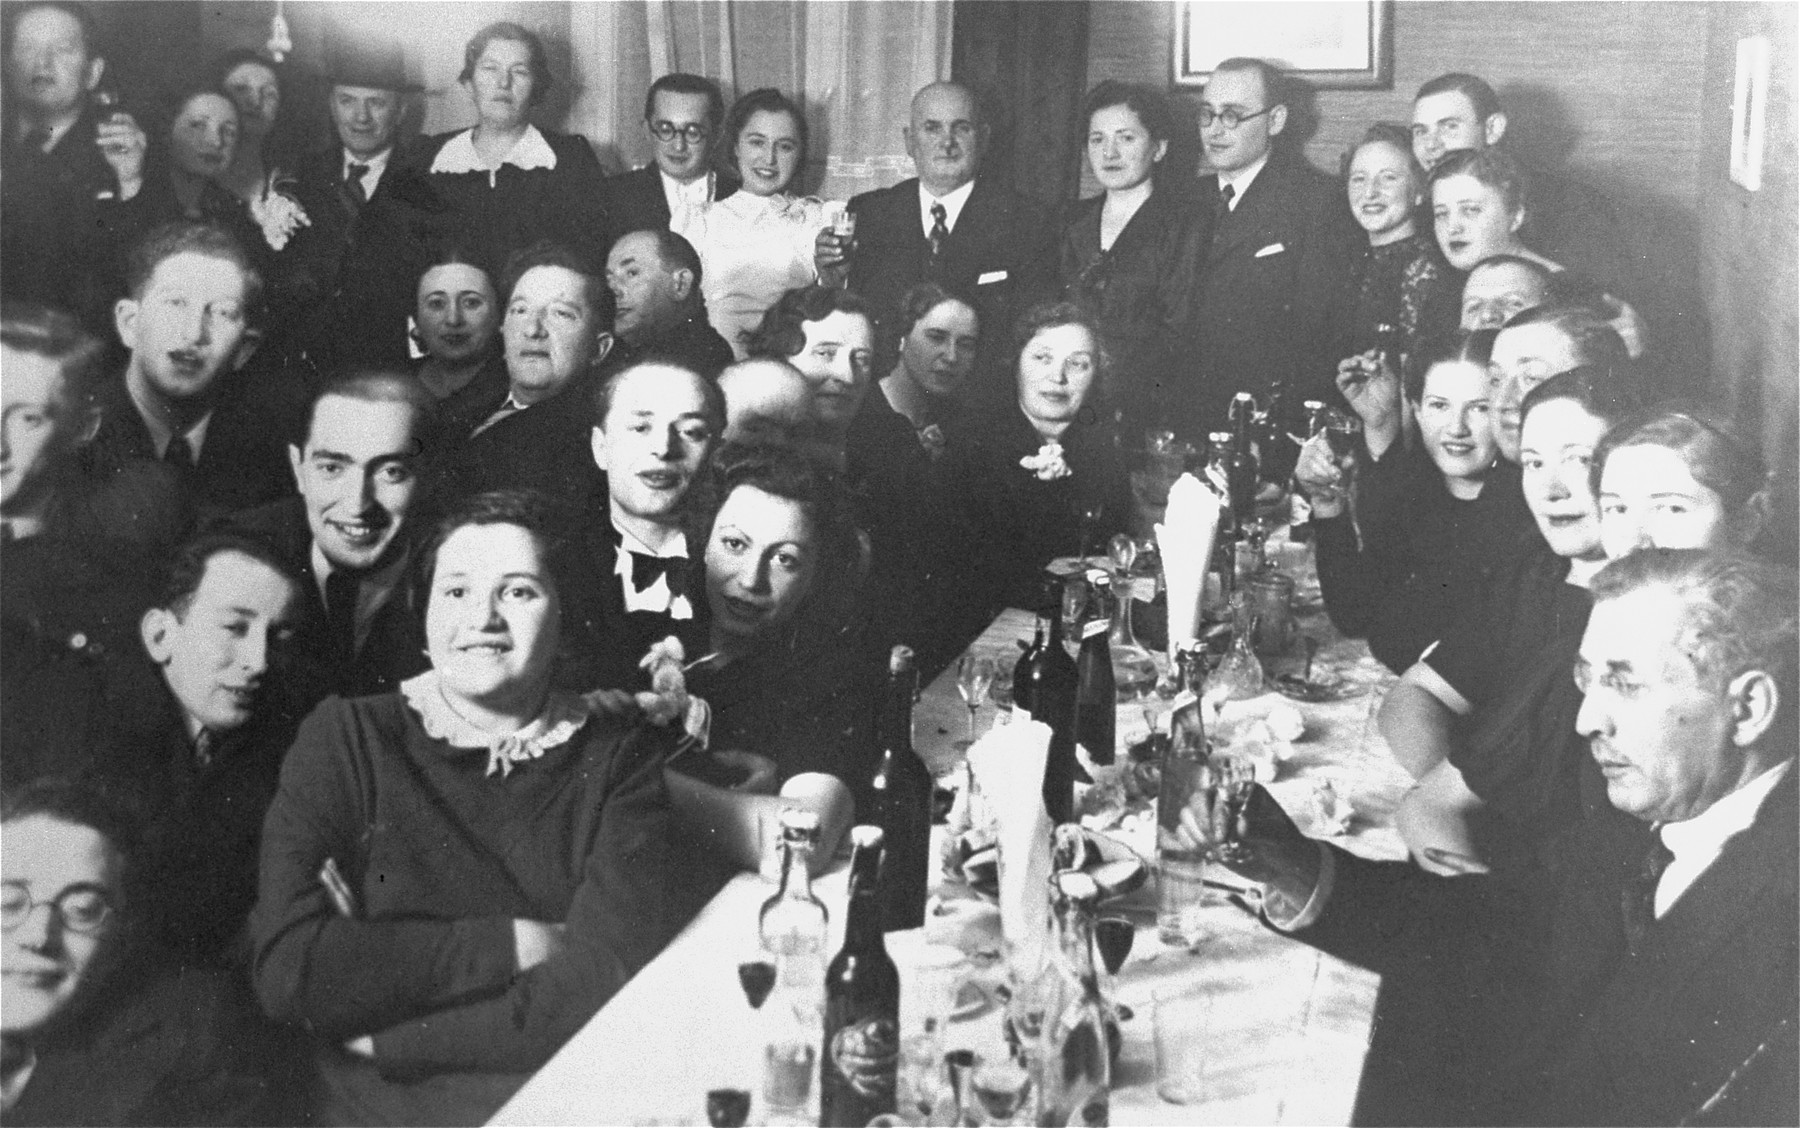 Family and friends are gathered for a Jewish wedding celebration in Kovno.  Among those pictured are Jona and Gita Wisgardisky (standing at the back on the right).